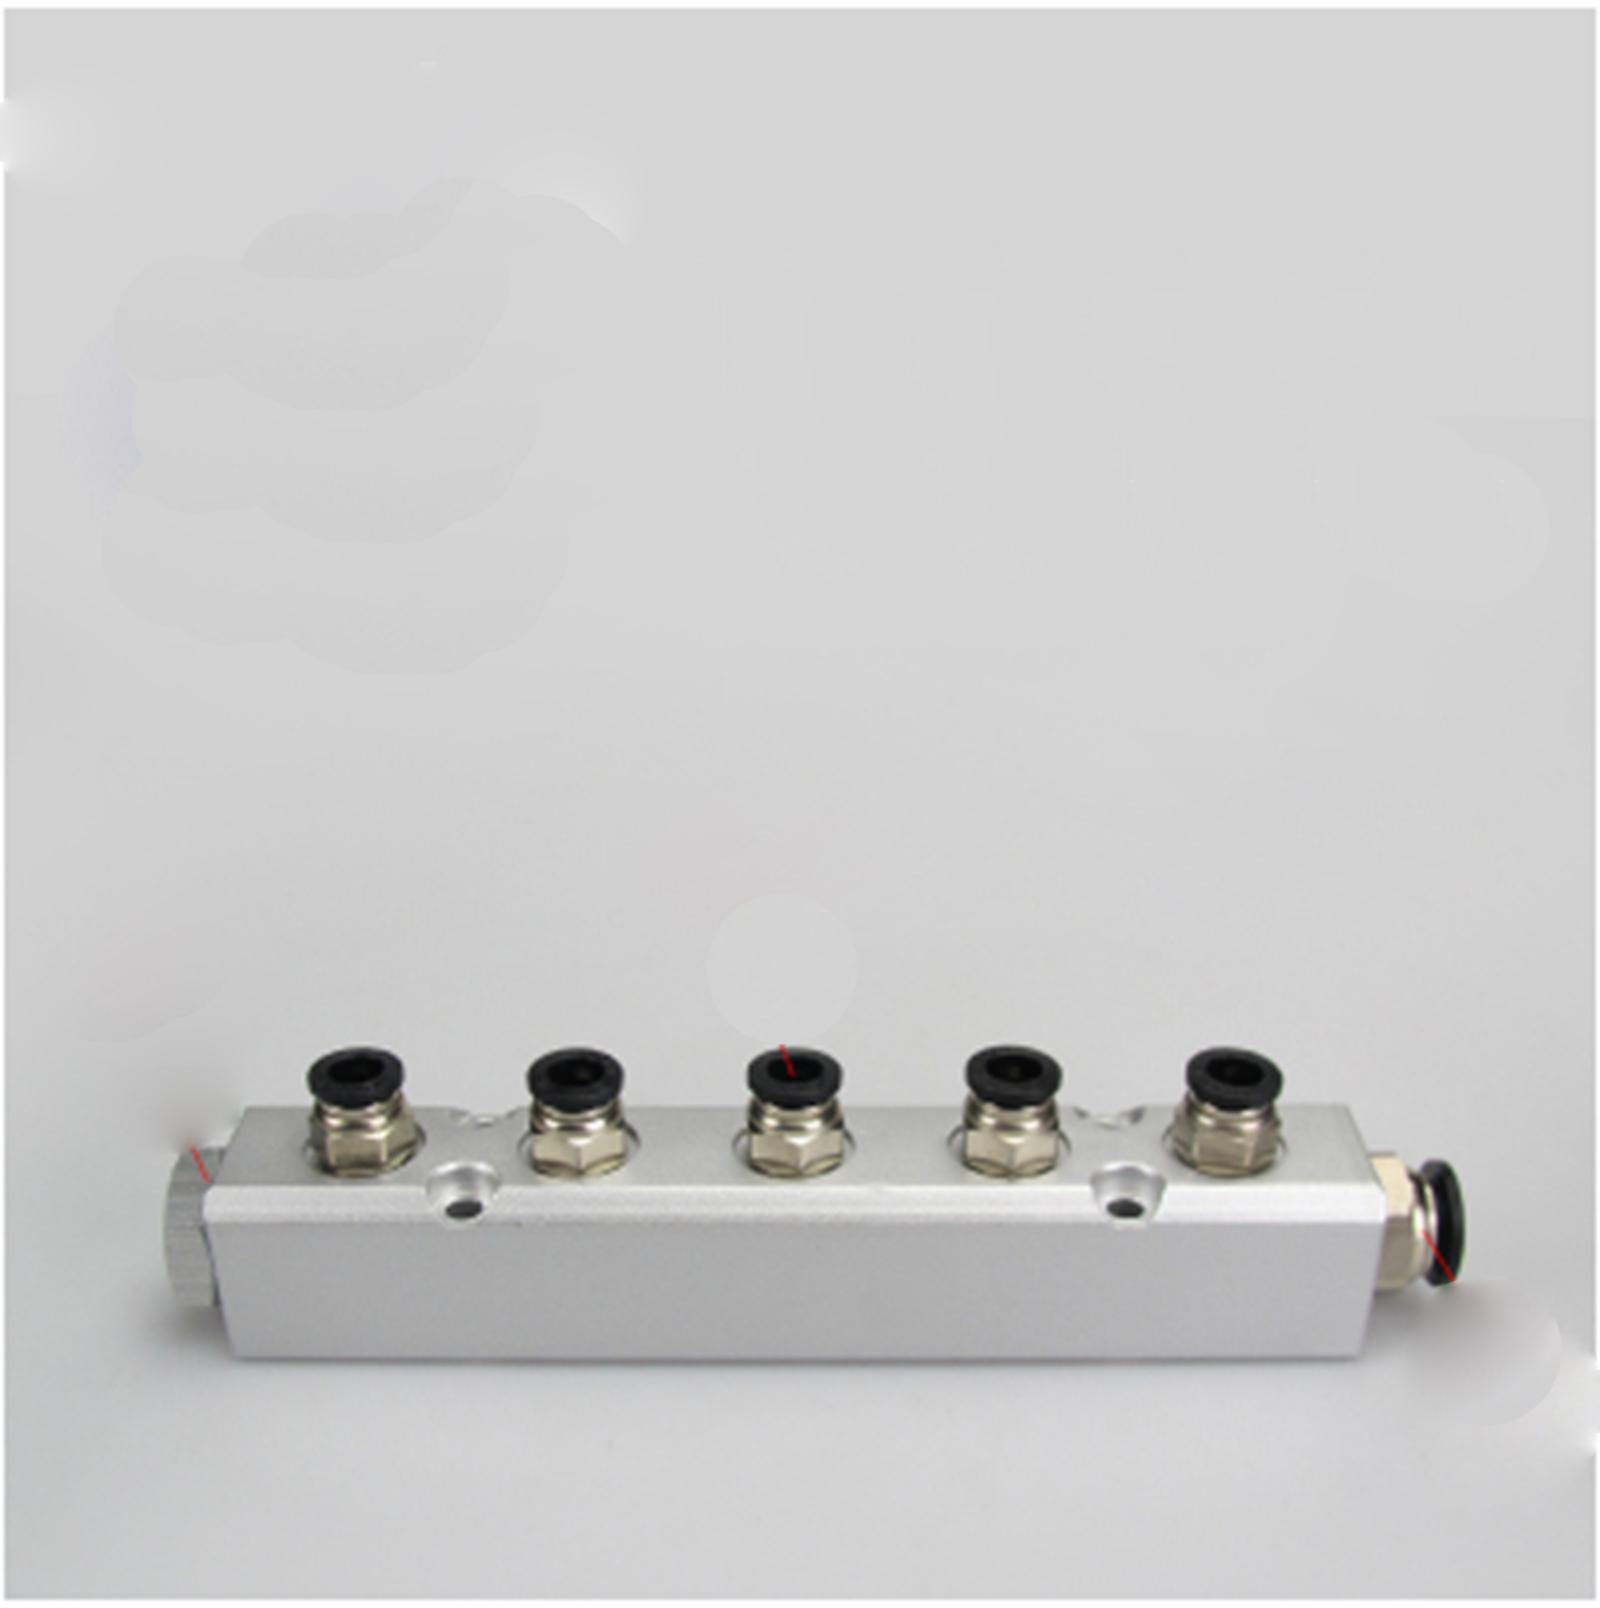 30x30mm G1/4 Out G1/2 In 5 Way Pneumatic Fitting Air Manifold Block Splitter расходомер barry 4 g1 2 2 8l min